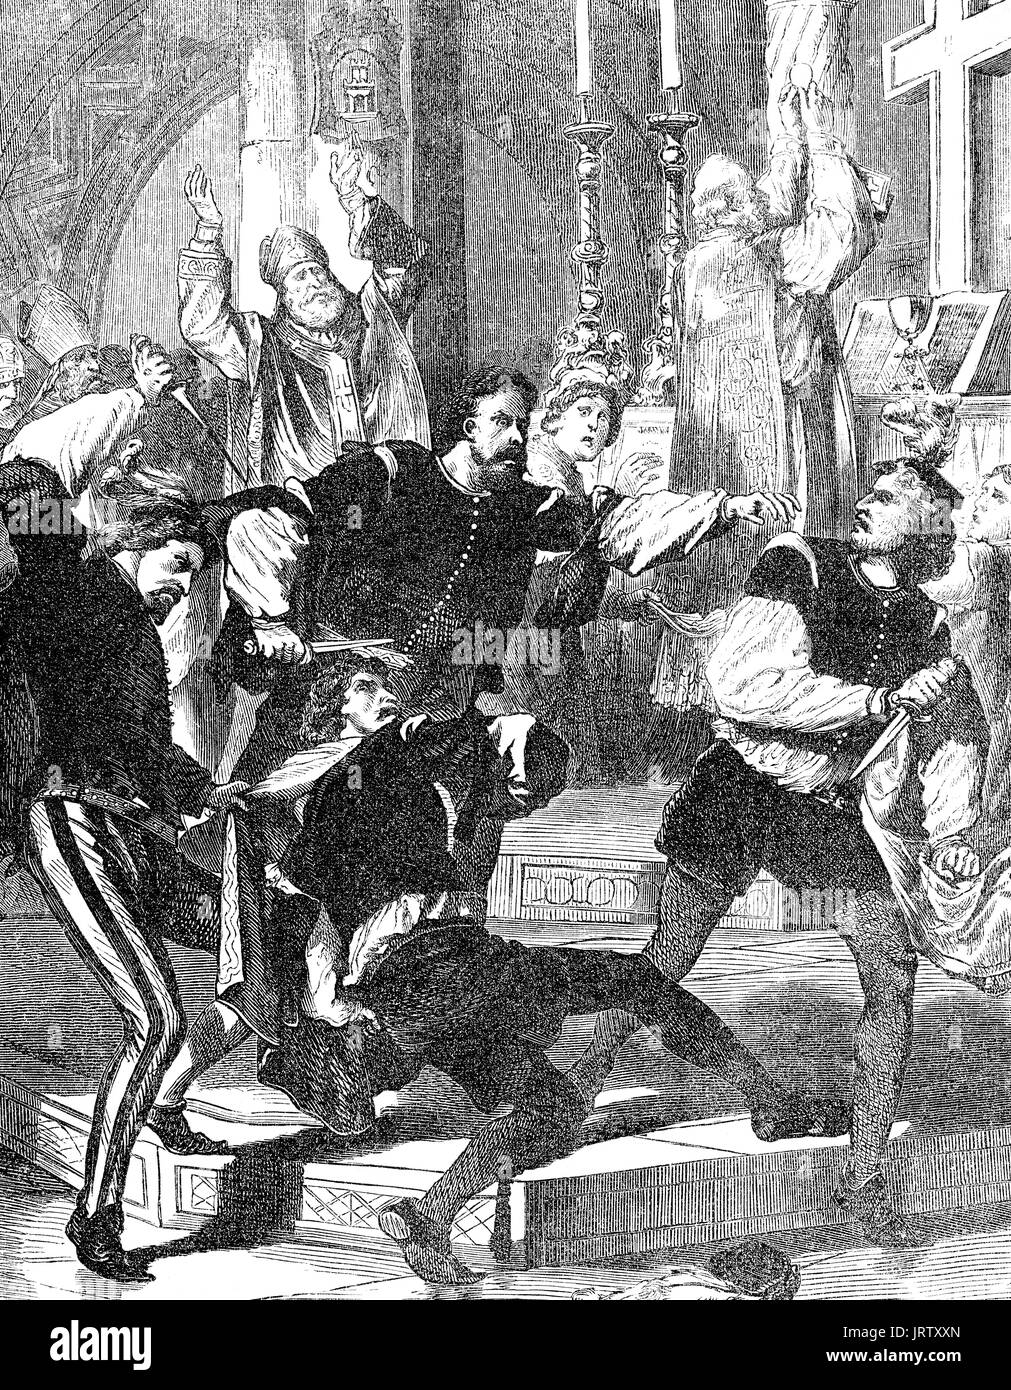 The Pazzi conspiracy, 26 April 1478, an attempt to assassinate Lorenzo de' Medici and his brother Giuliano de' Medici - Stock Image